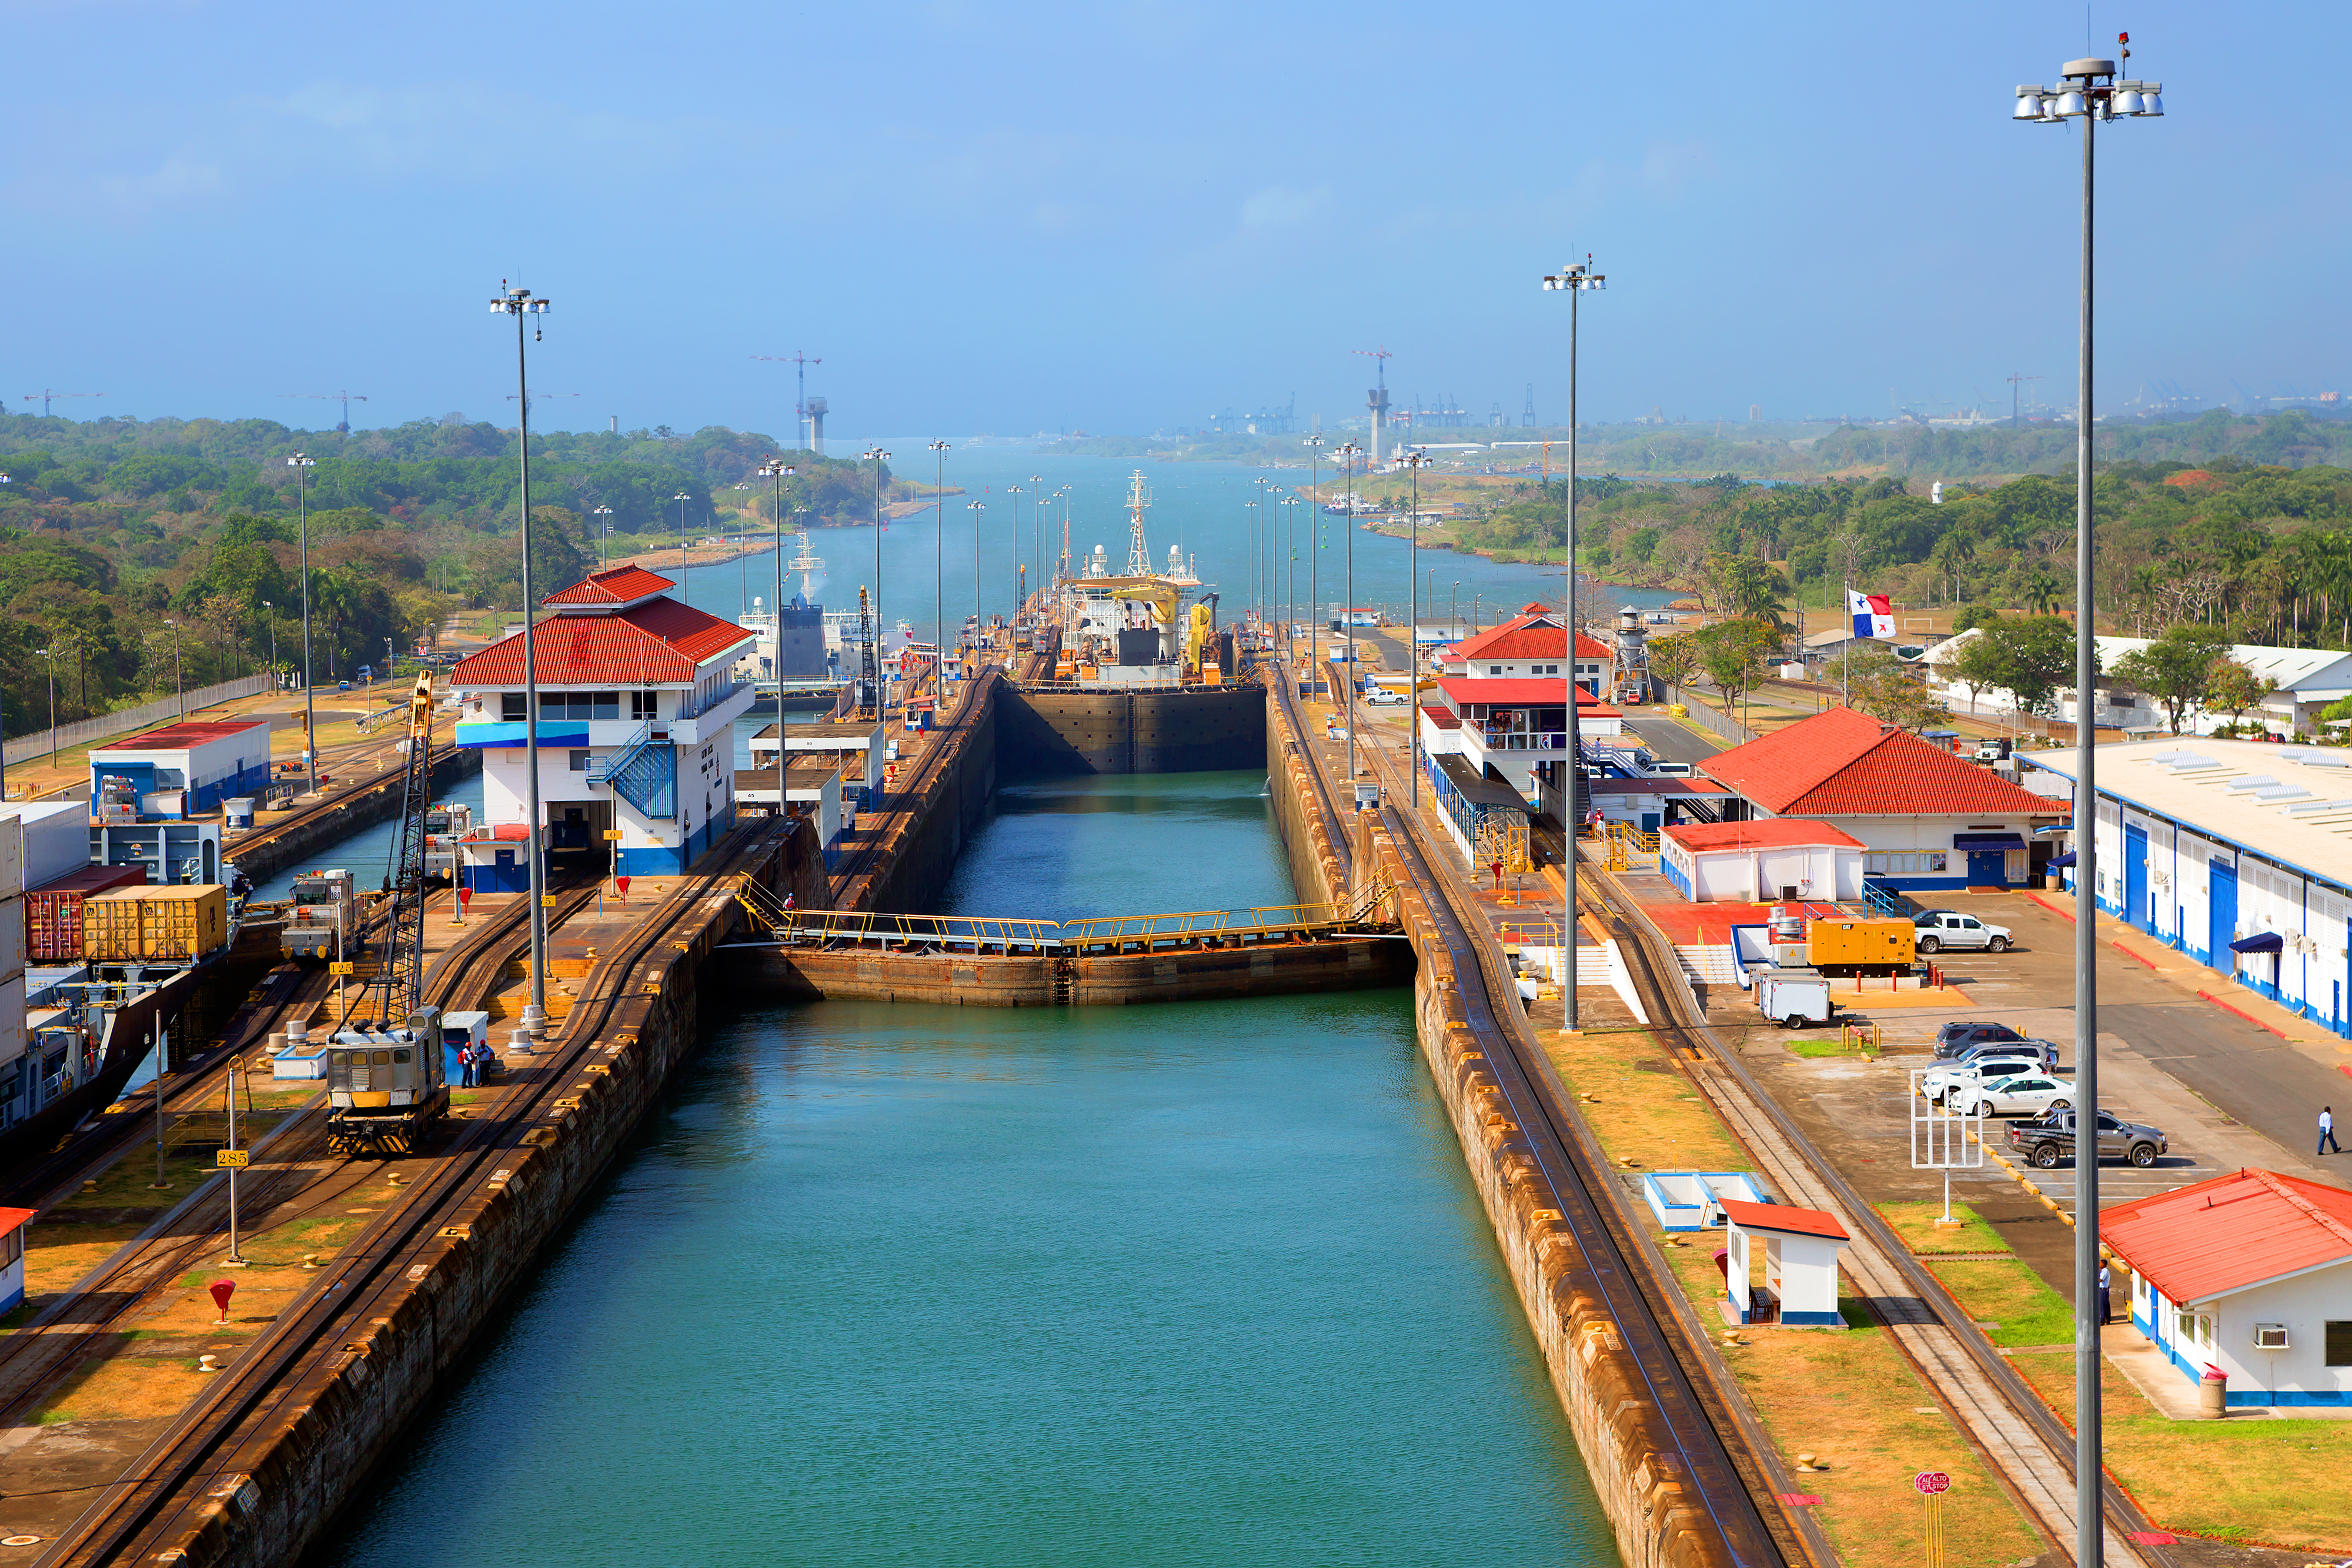 The second lock of the Panama canal from the Pacific ocean. Photo Credit: Shutterstock